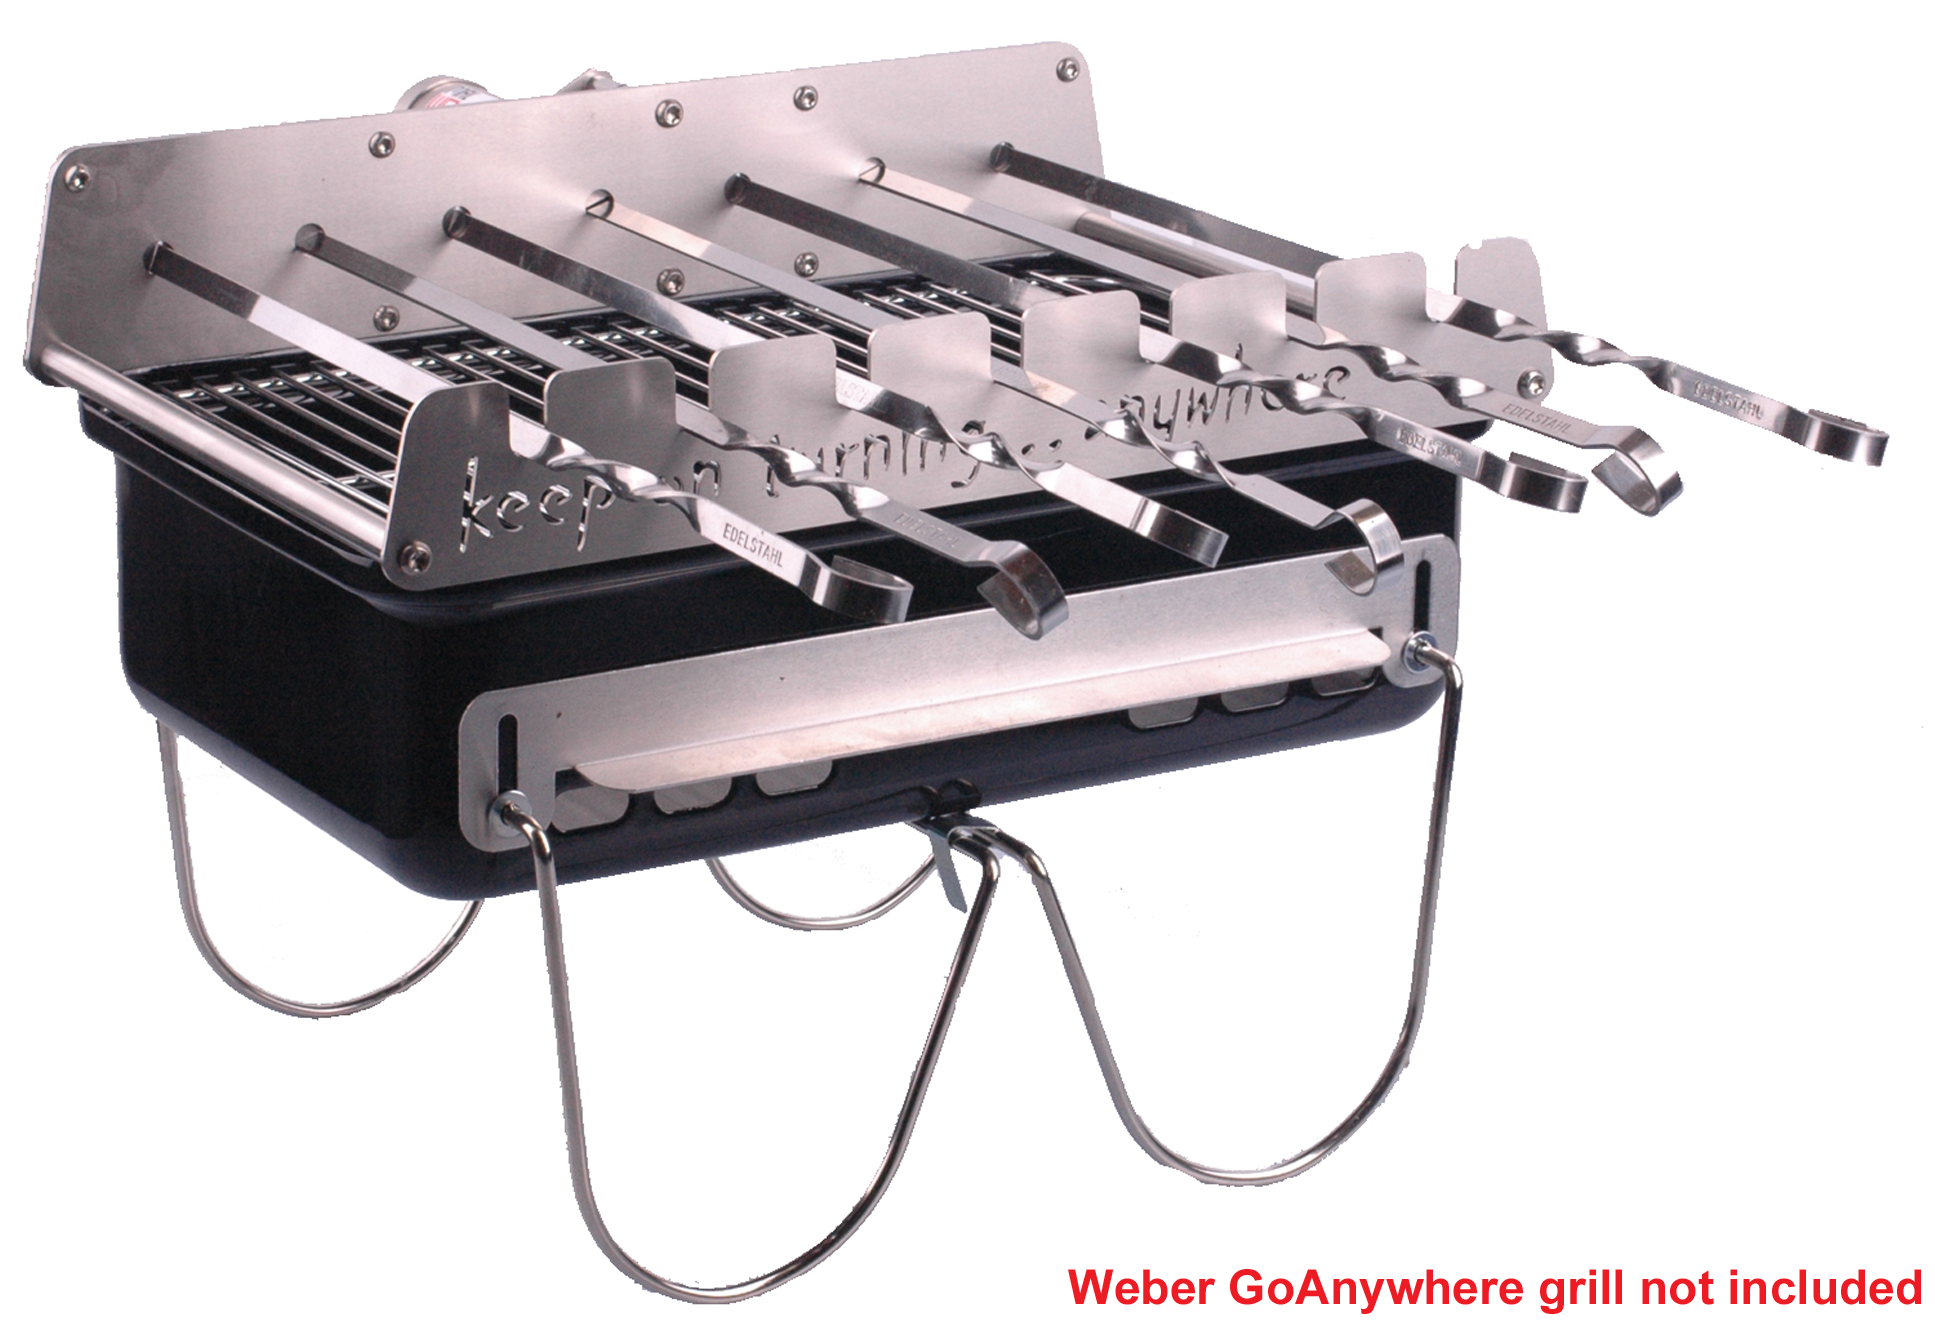 Go Anywhere Weber.Details About Rotisserie Add On Kit For Weber Go Anywhere Bbq Charcoal Grill Rotating Skewers